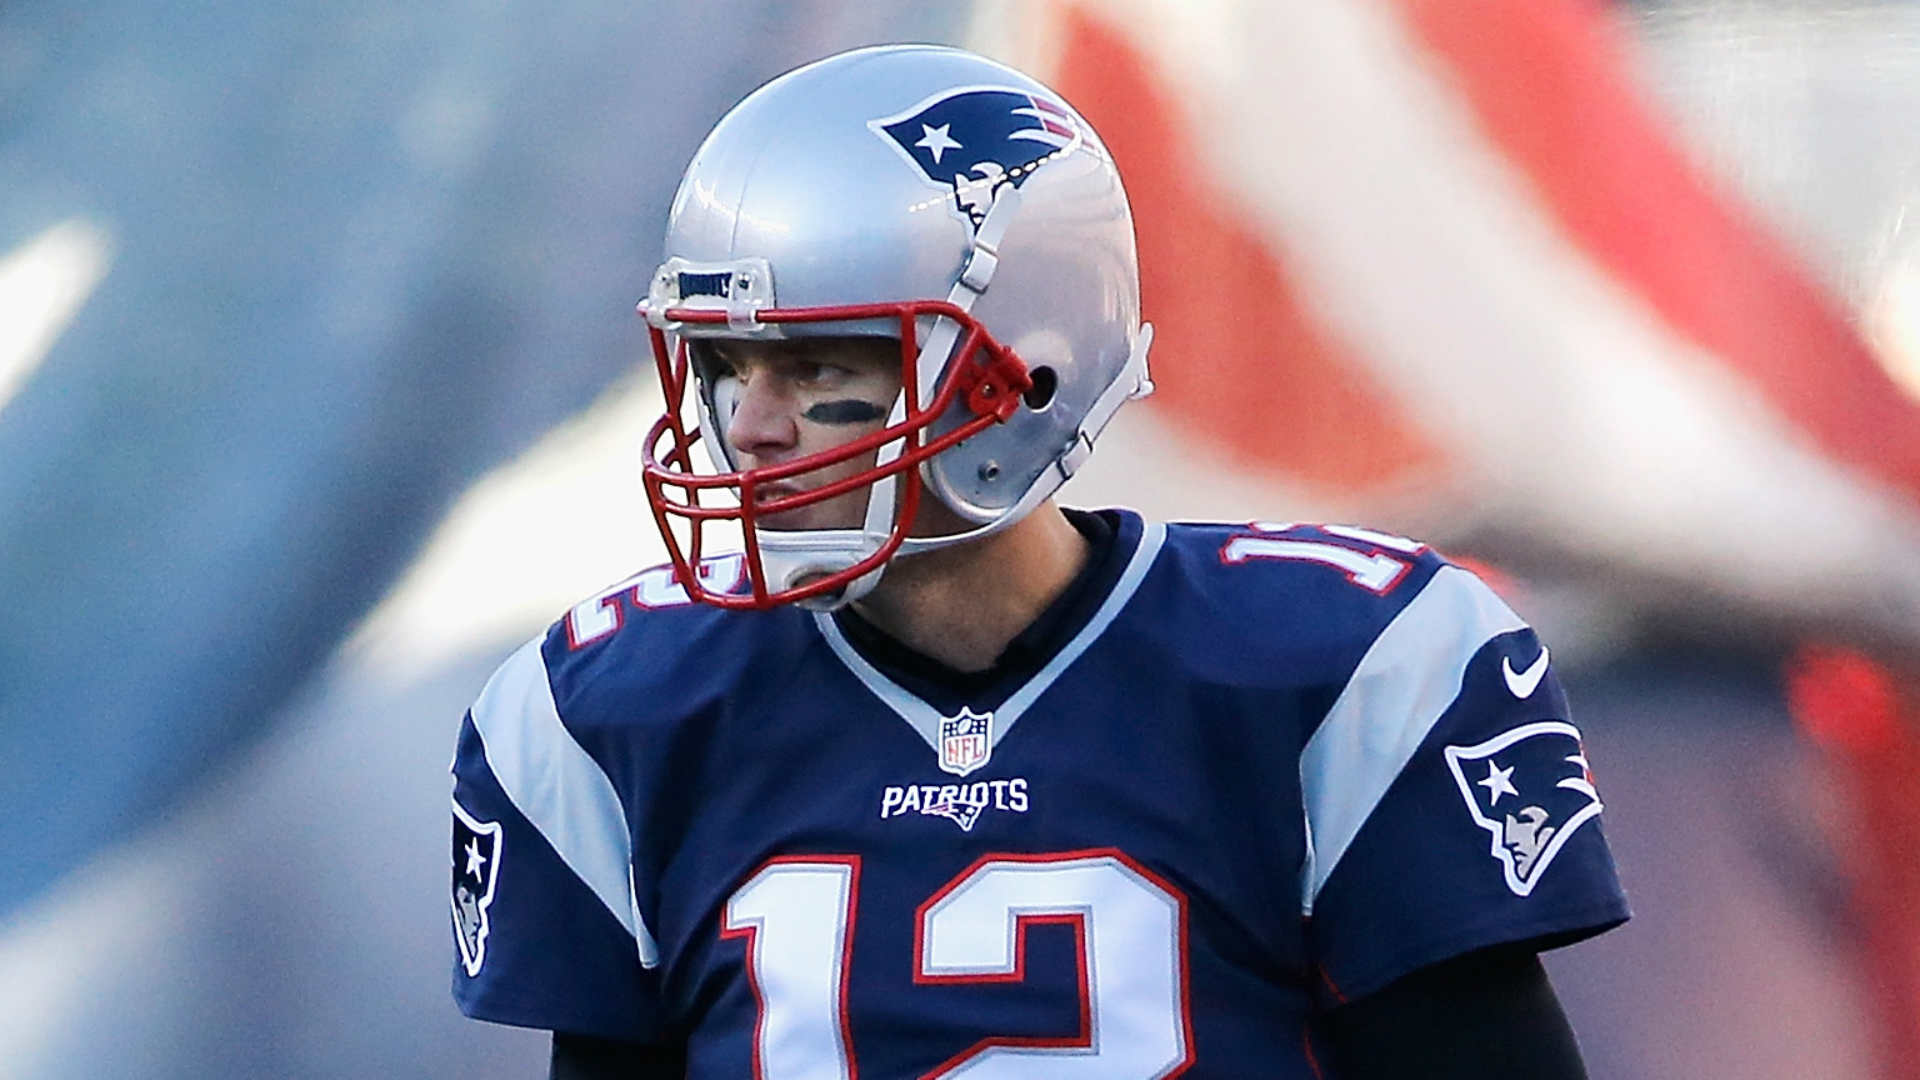 Tom Brady breaks all-time QB wins record with 201st victory